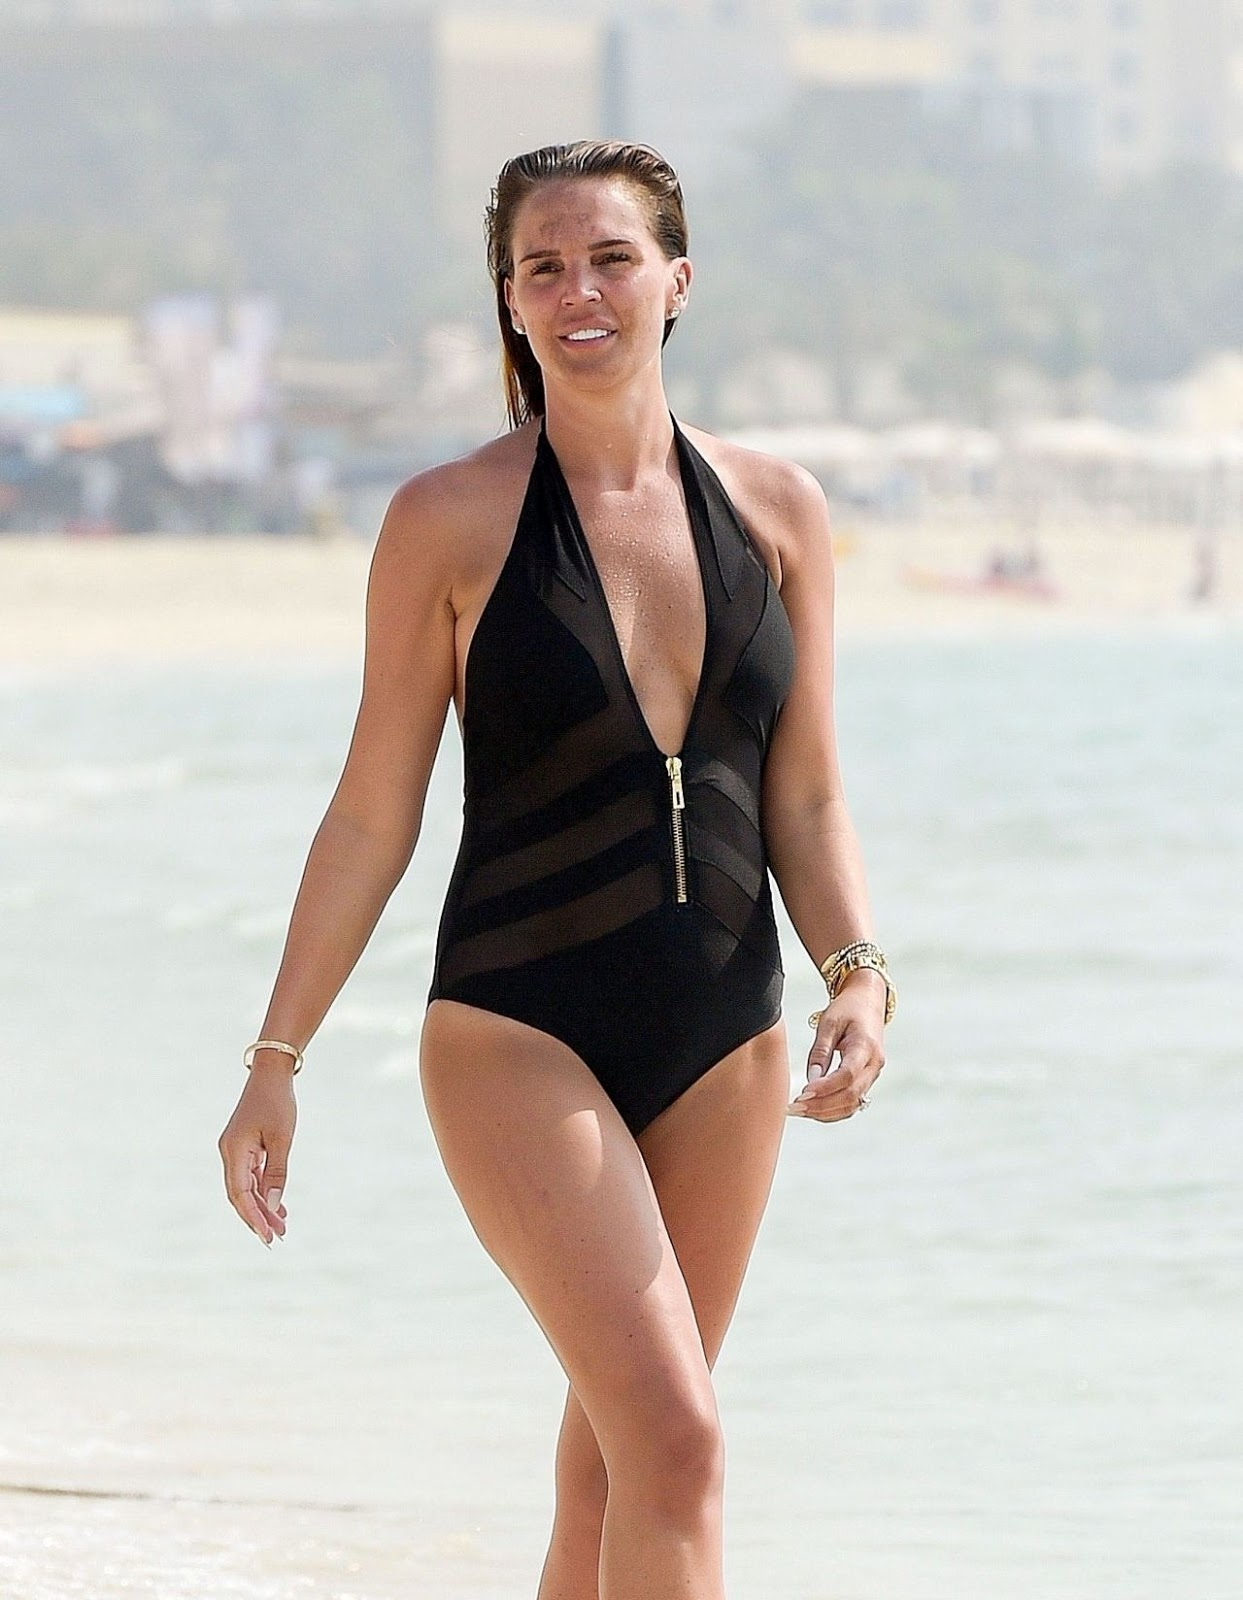 Danielle Lloyd Candids In A Black Swimsuit On The Beach Dubai